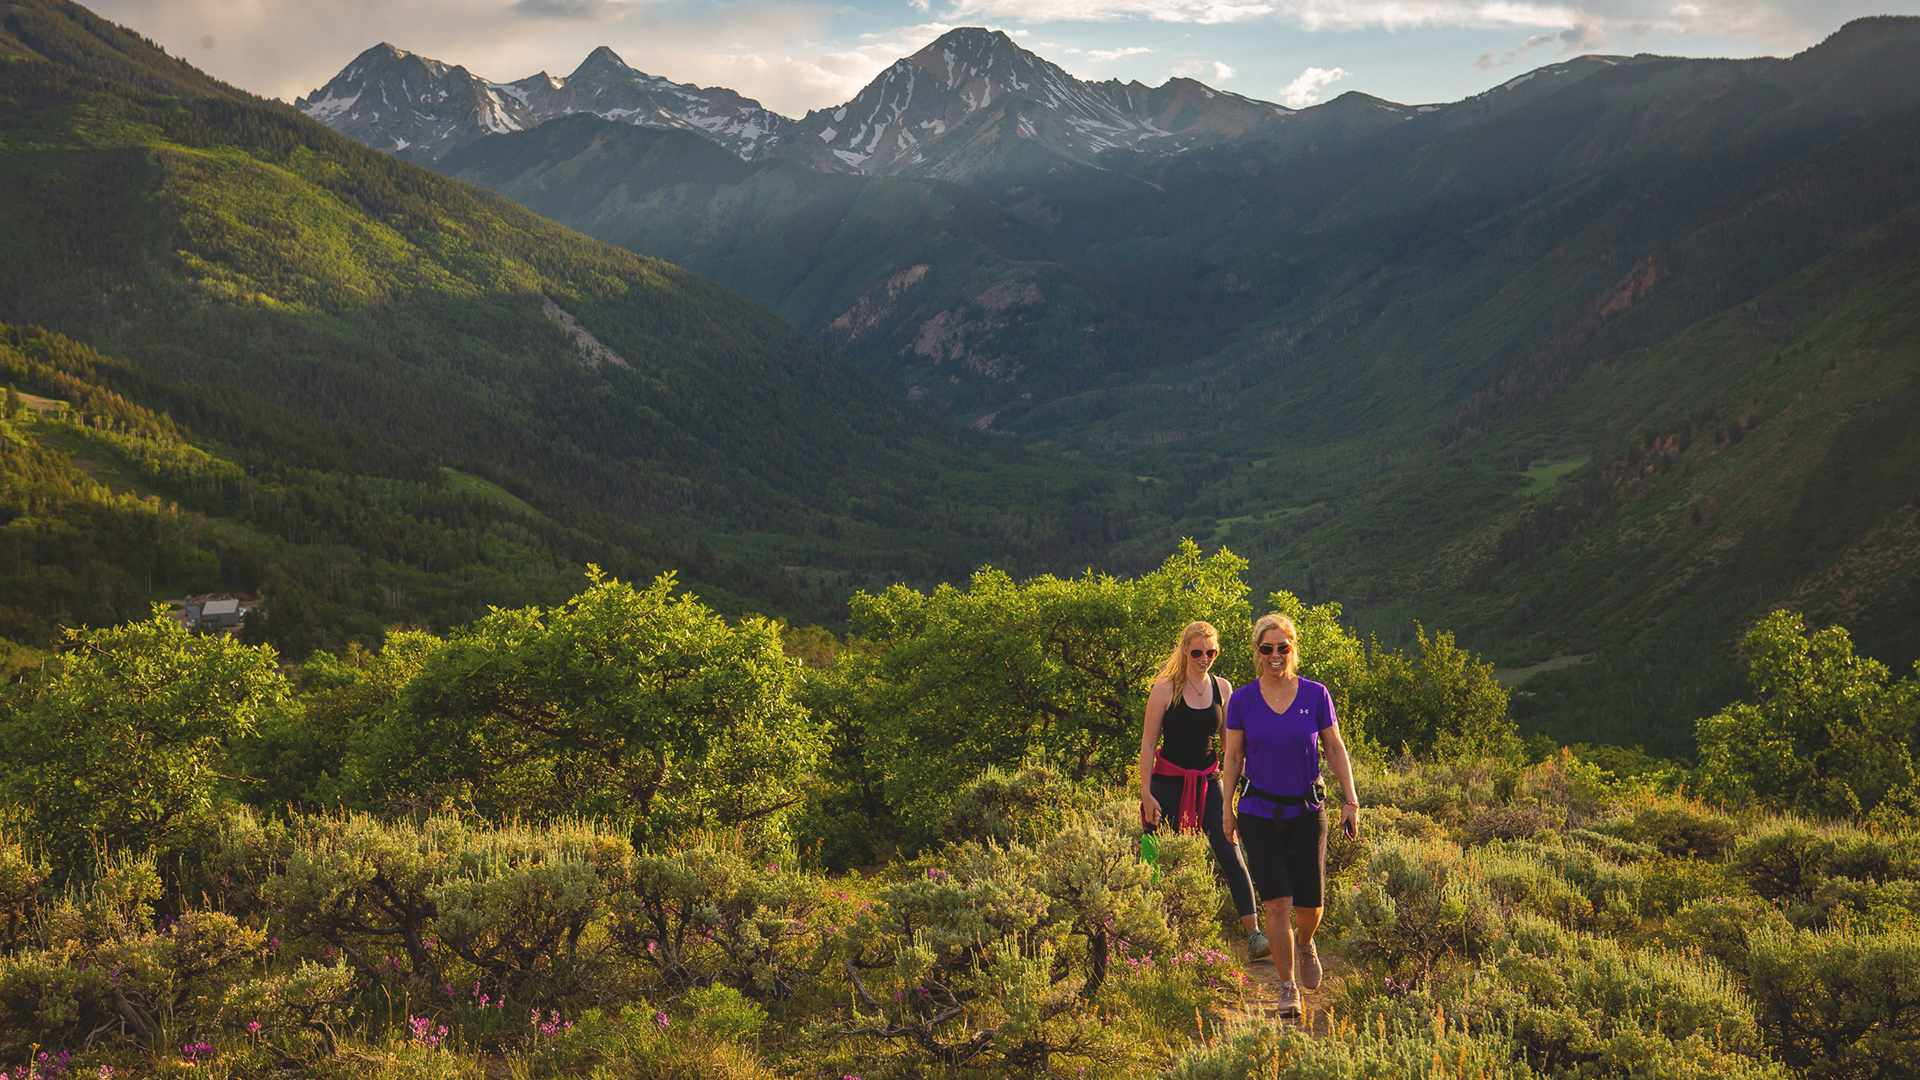 Hiking - Wildflowers abound on the meandering hiking trails located all throughout Snowmass Village, with all trails leading right back home.